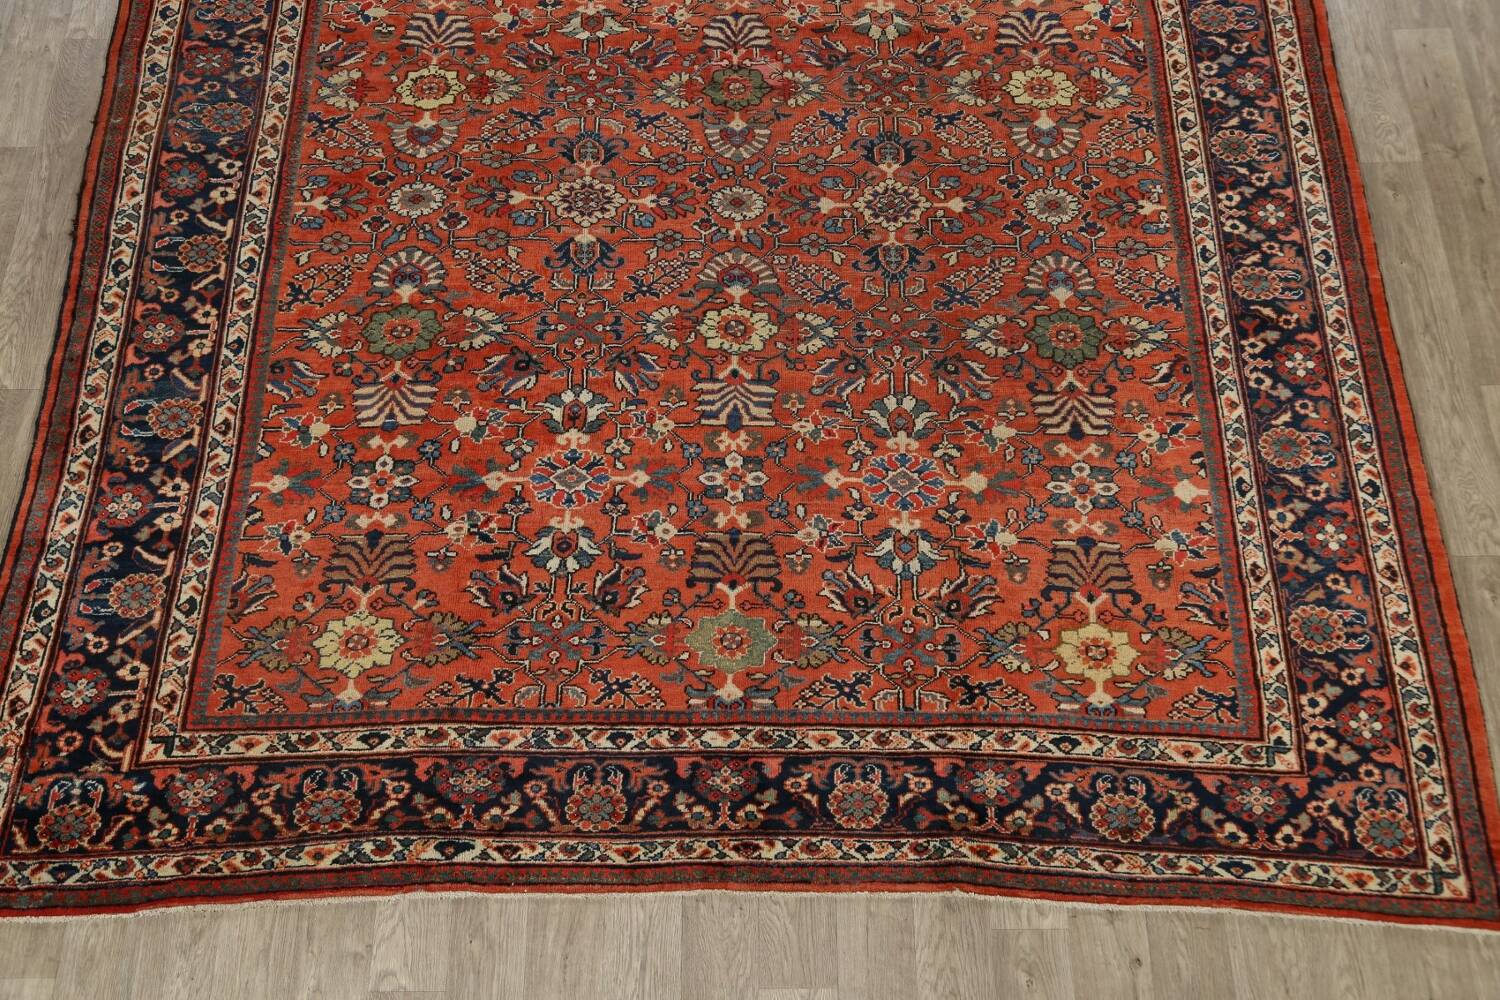 Pre-1900 Antique Vegetable Dye Sultanabad Persian Area Rug 10x14 image 8